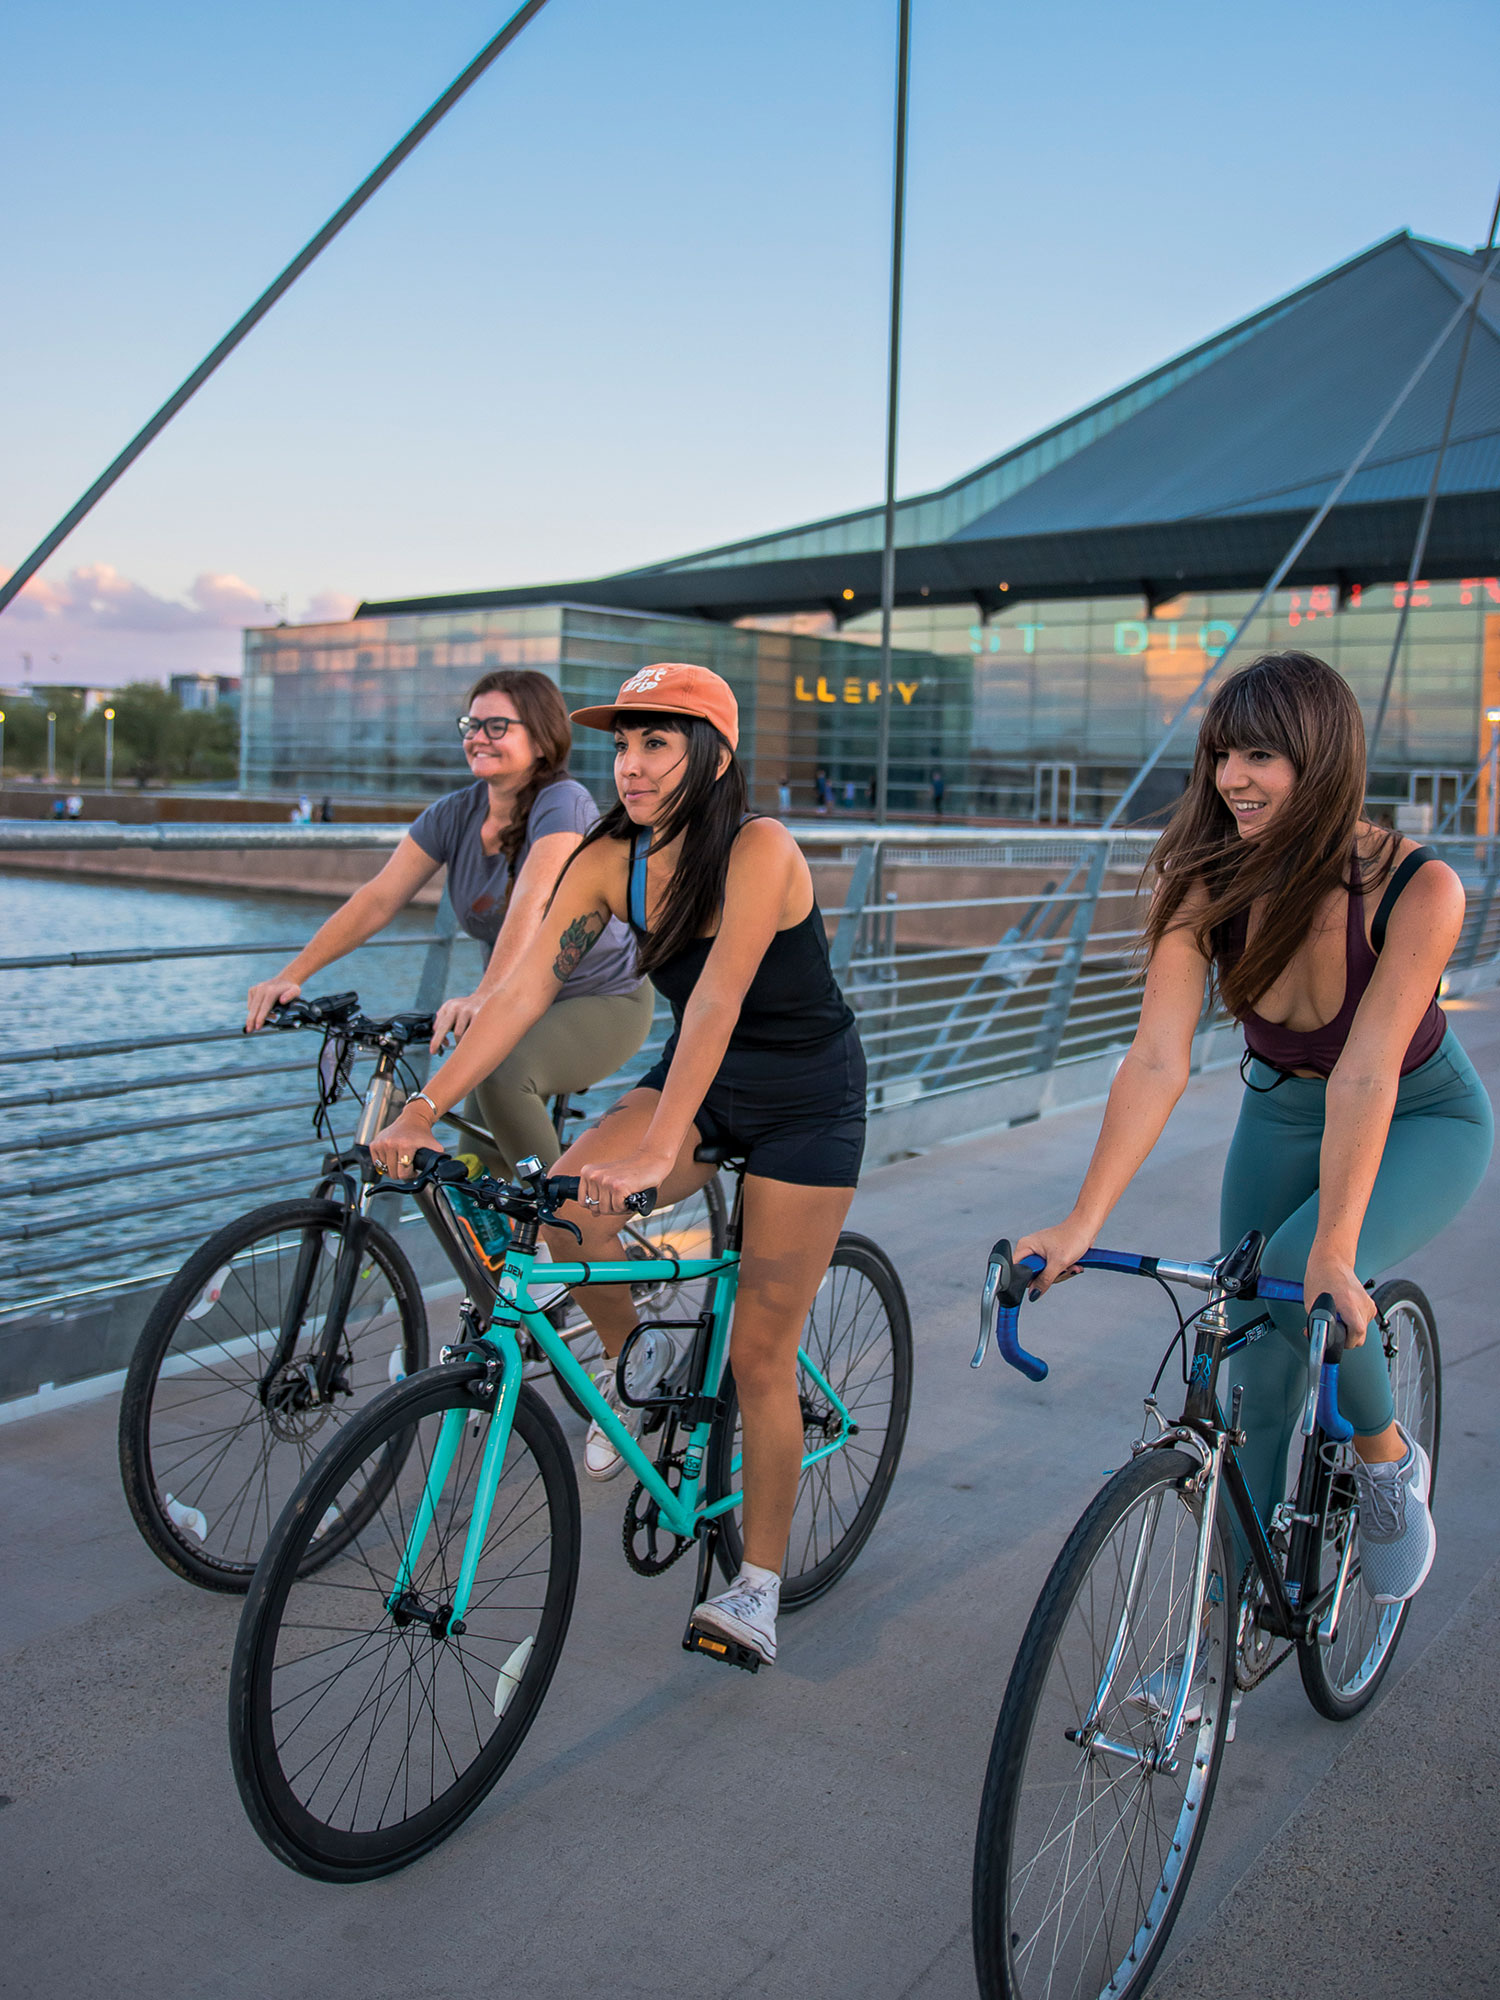 Rio Salado Pathway in Tempe.; Photo by Danny Upshaw; Models: Dakota Jeane DiSanto; Chelsea Hughes; Rosemary Liversedge